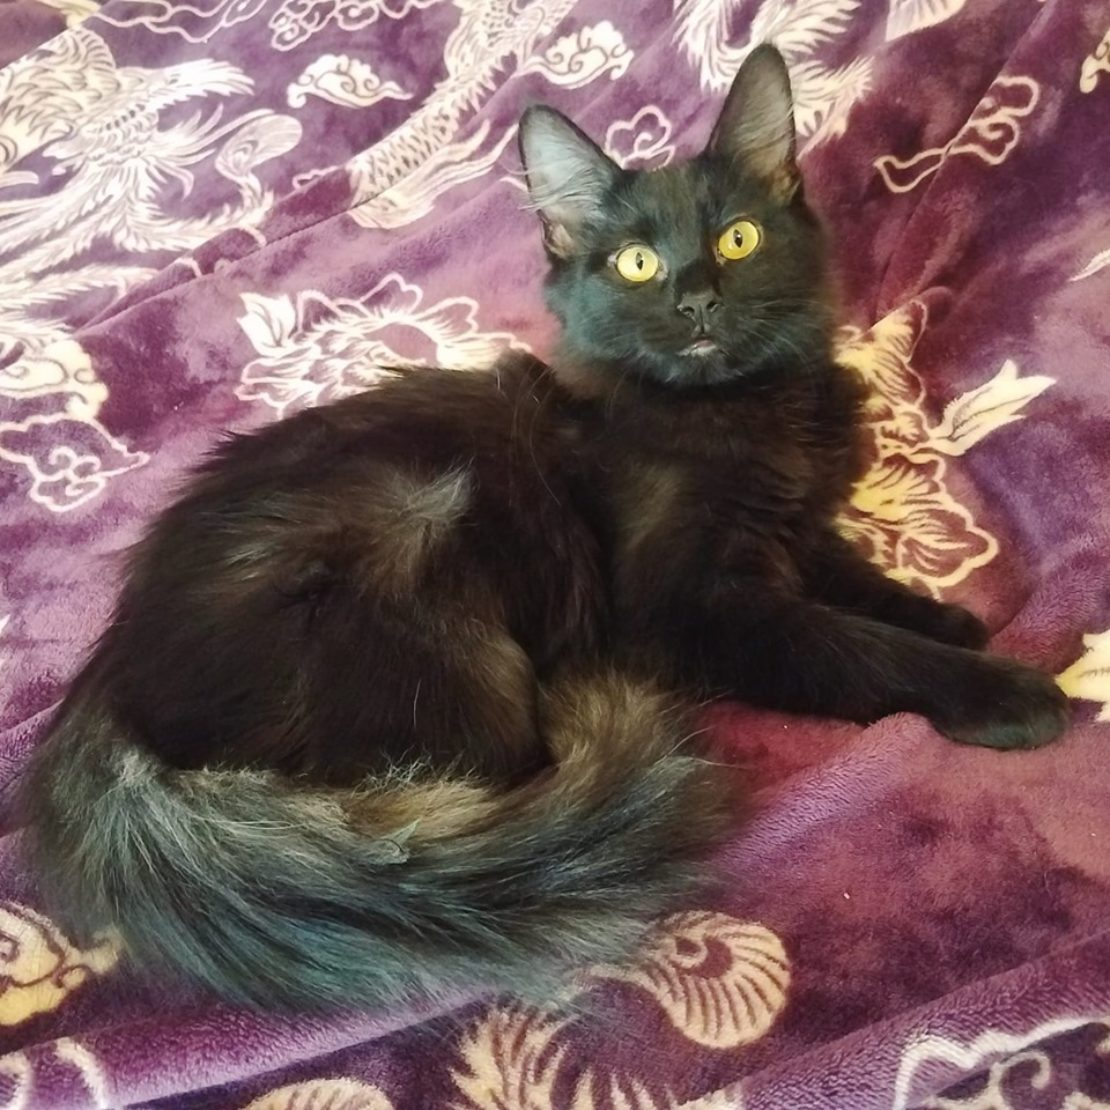 black cat with orange eyes and fluffy tail lies on bedspread